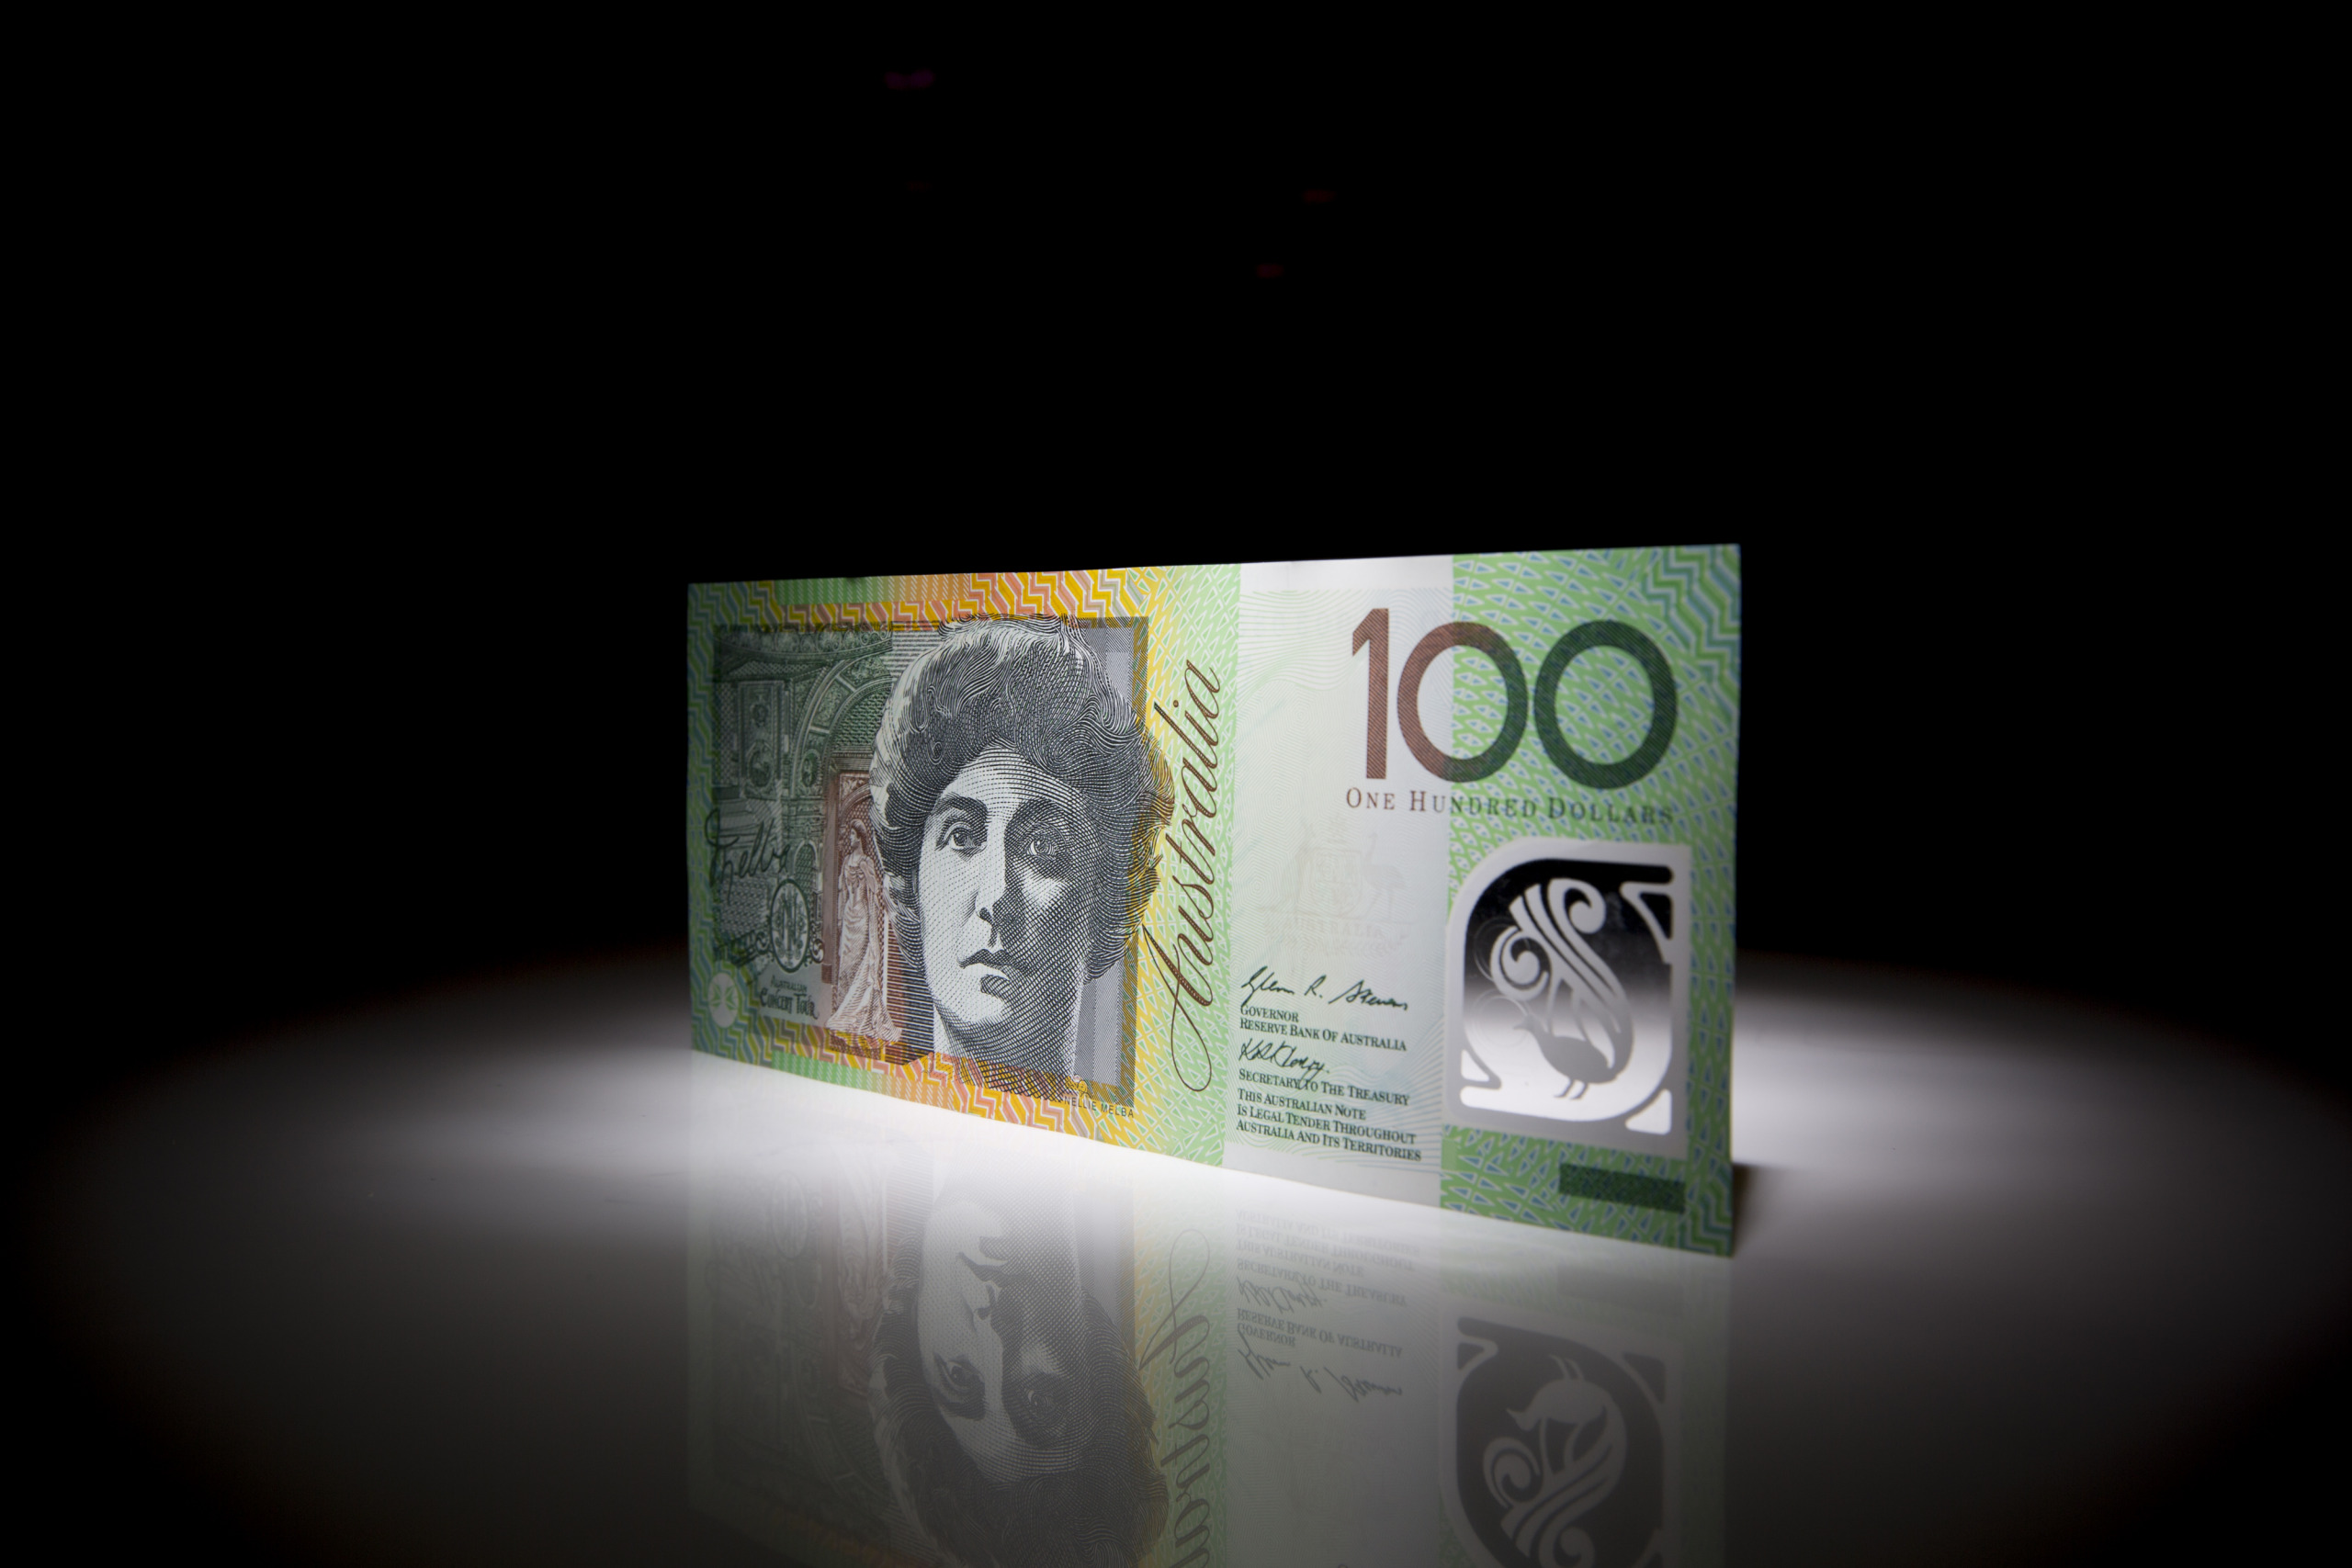 An Australian one-hundred dollar banknote is arranged for a photograph in Hong Kong, China, on Thursday, March 13, 2014. The Australian dollar gained against all of its 16 major peers after data showed employers added more than three times the jobs economists estimated, while New Zealand's dollar jumped to a record on a trade-weighted basis after Reserve Bank Governor Graeme Wheeler became the first head of a major developed central bank to raise interest rates since 2011. Photographer: Brent Lewin/Bloomberg